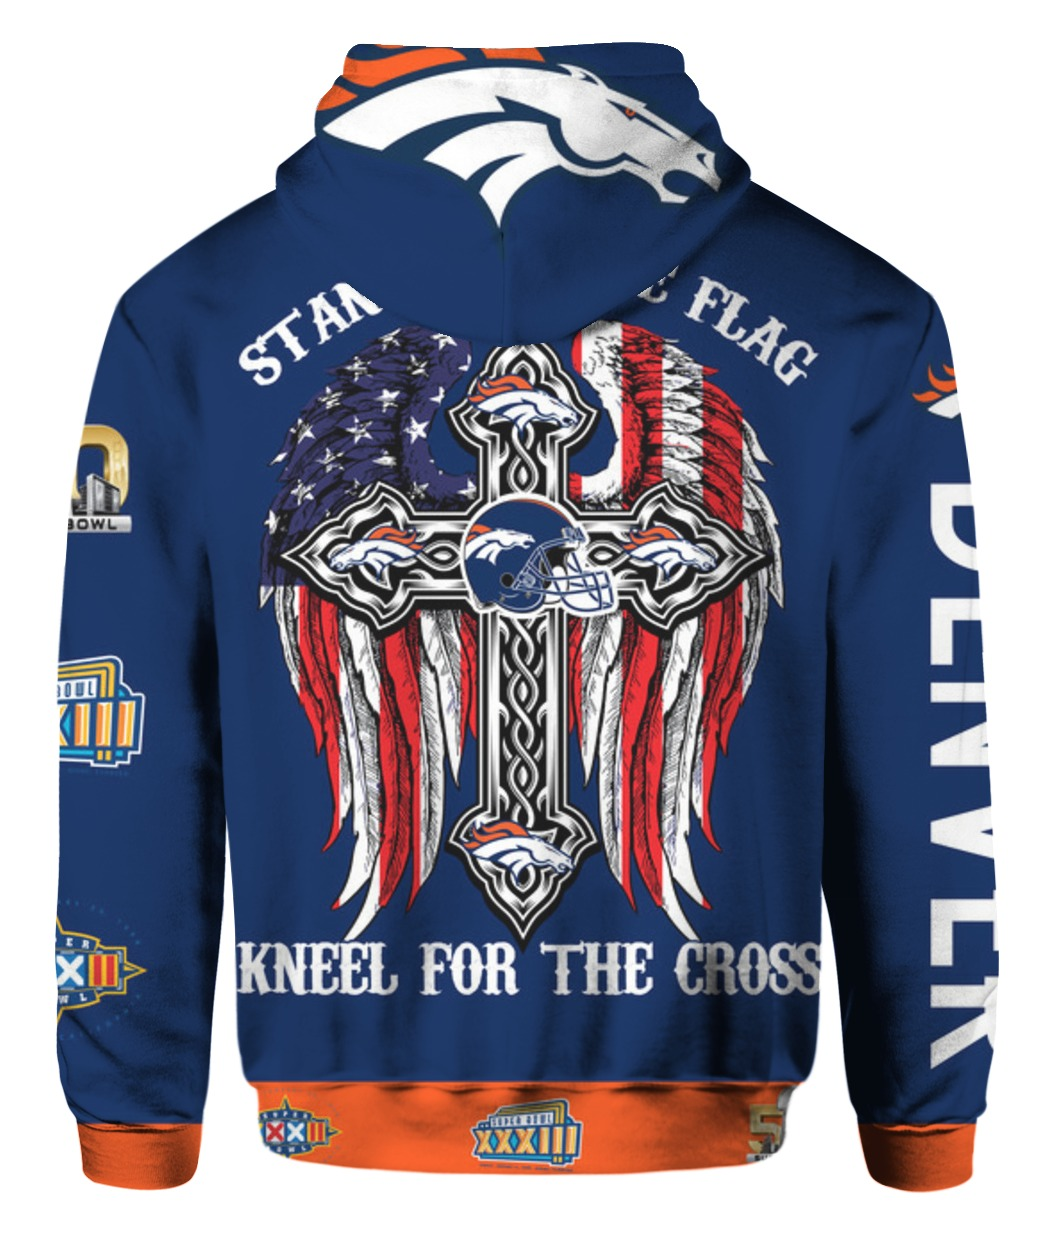 Stand for the flag kneel for the cross denver broncos all over print hoodie - back